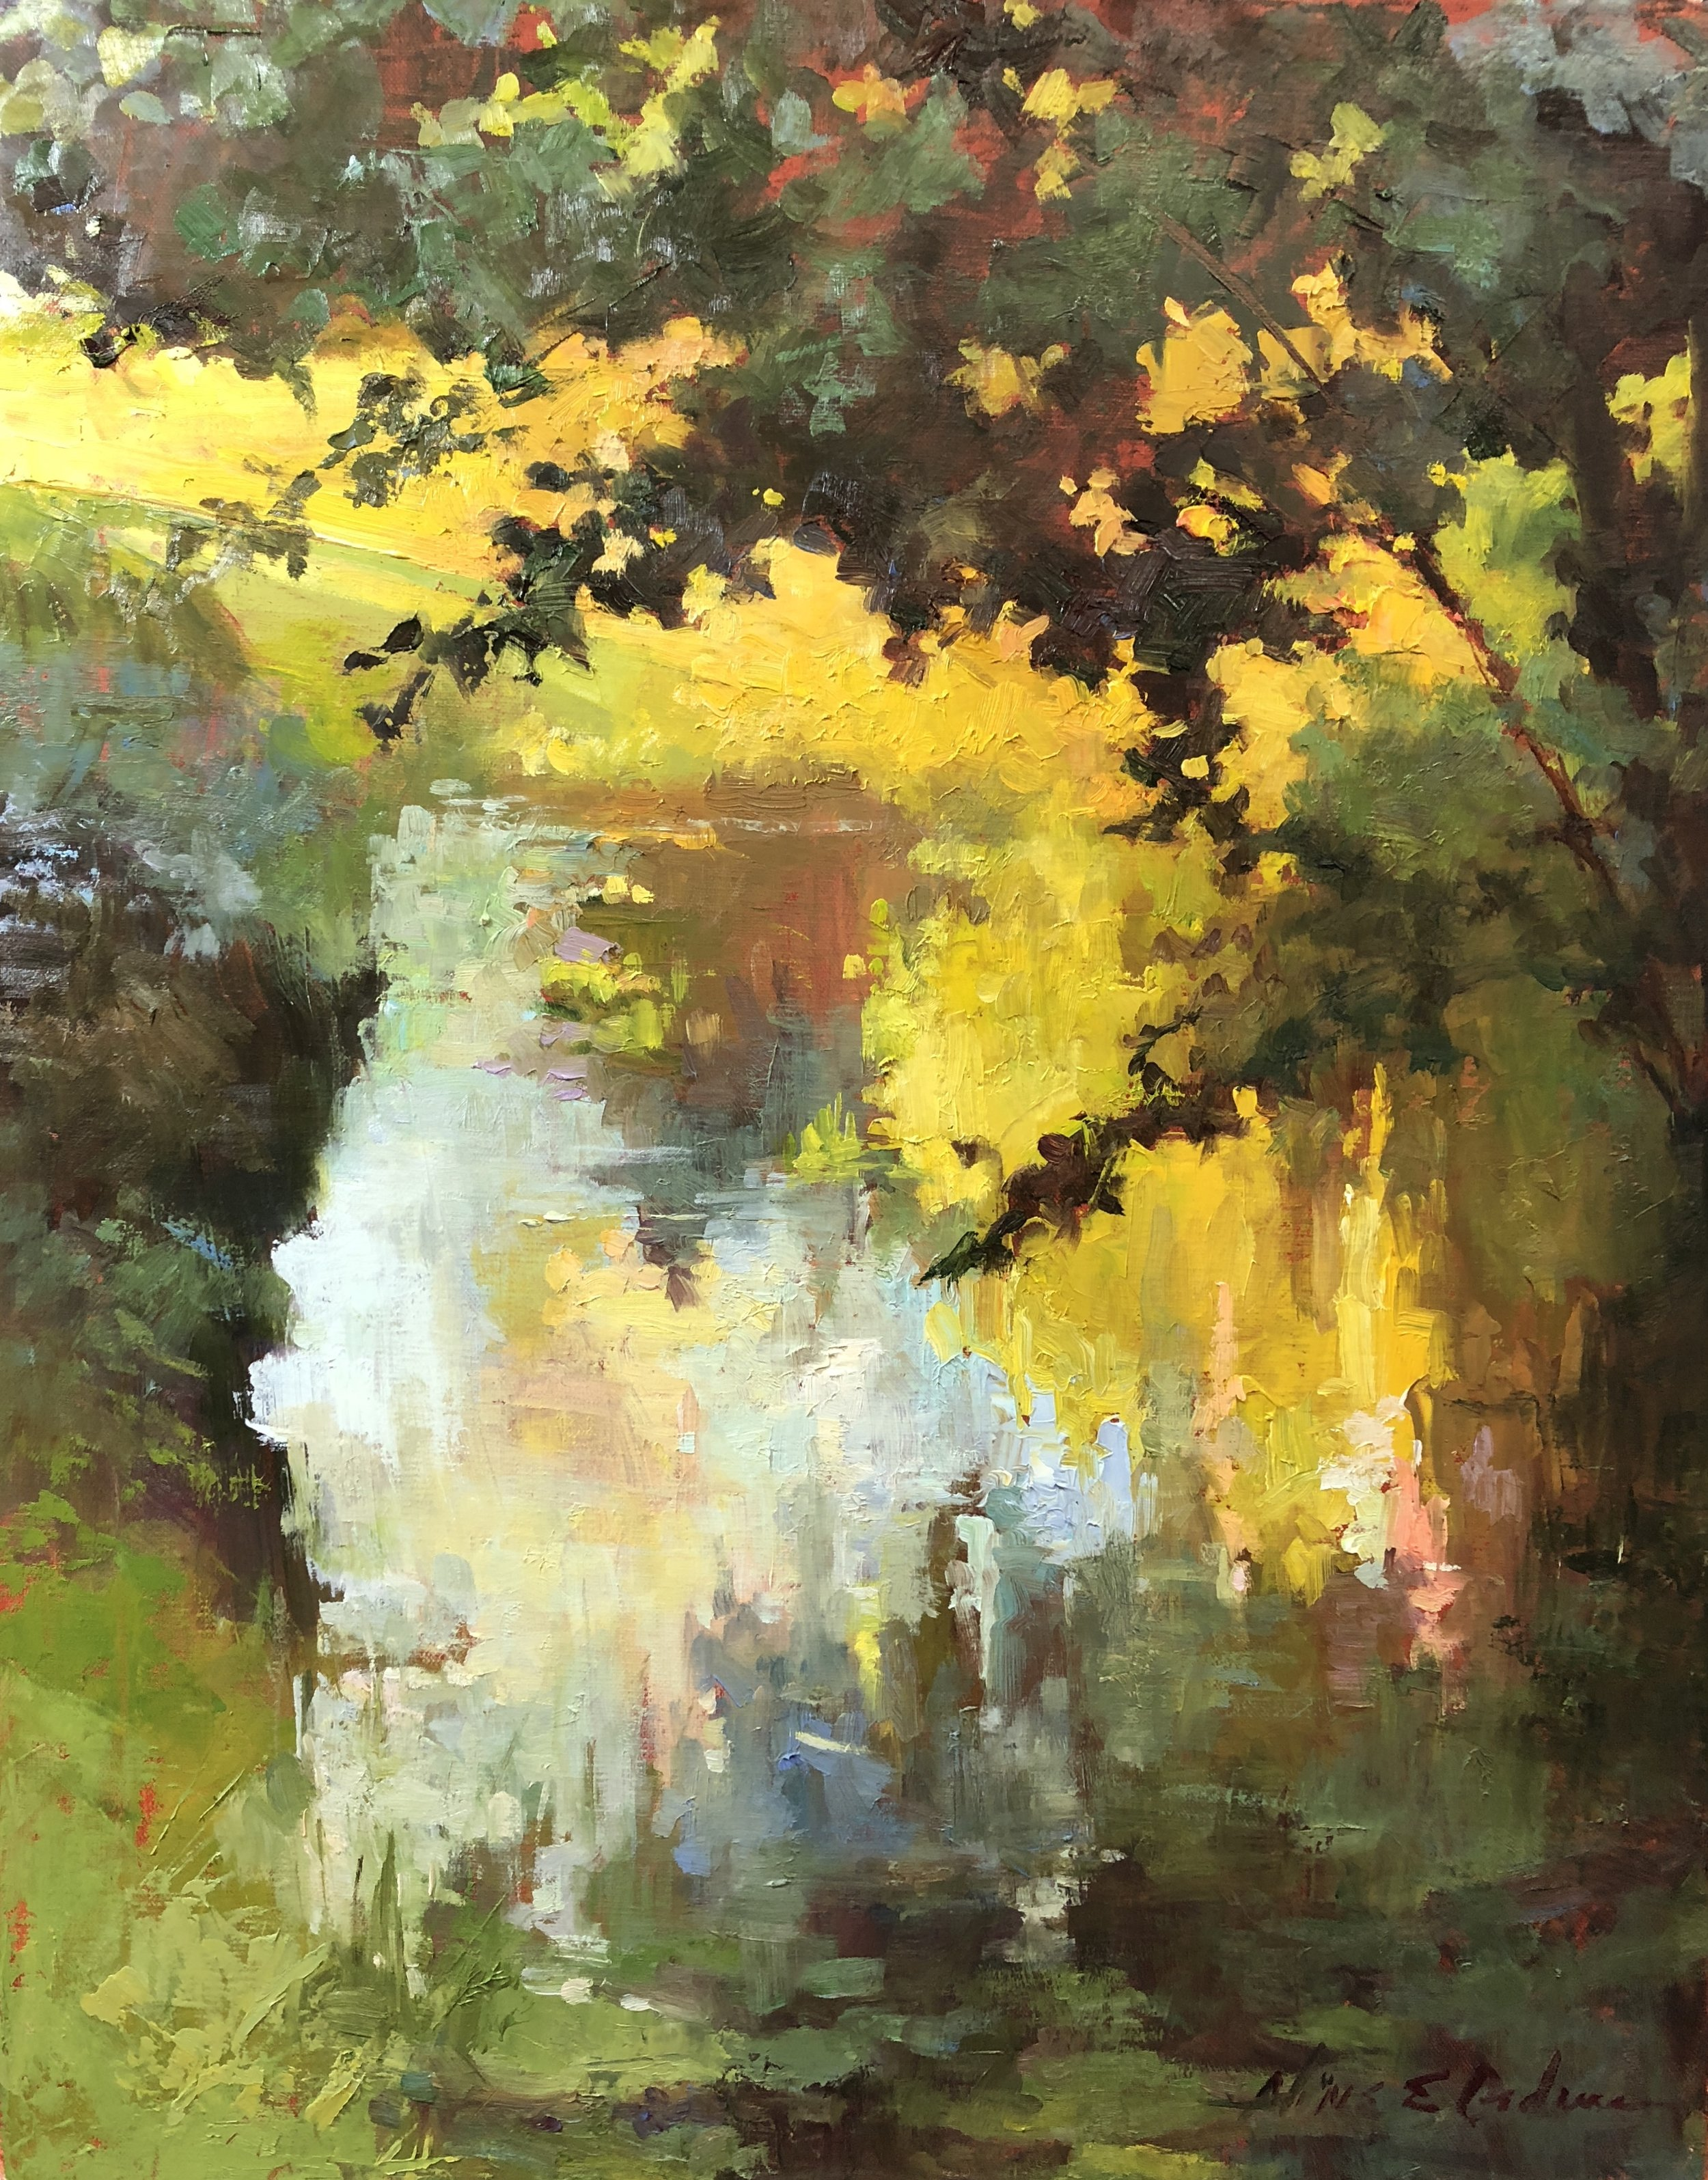 Pond Overhang  16 x 20 oil on canvas